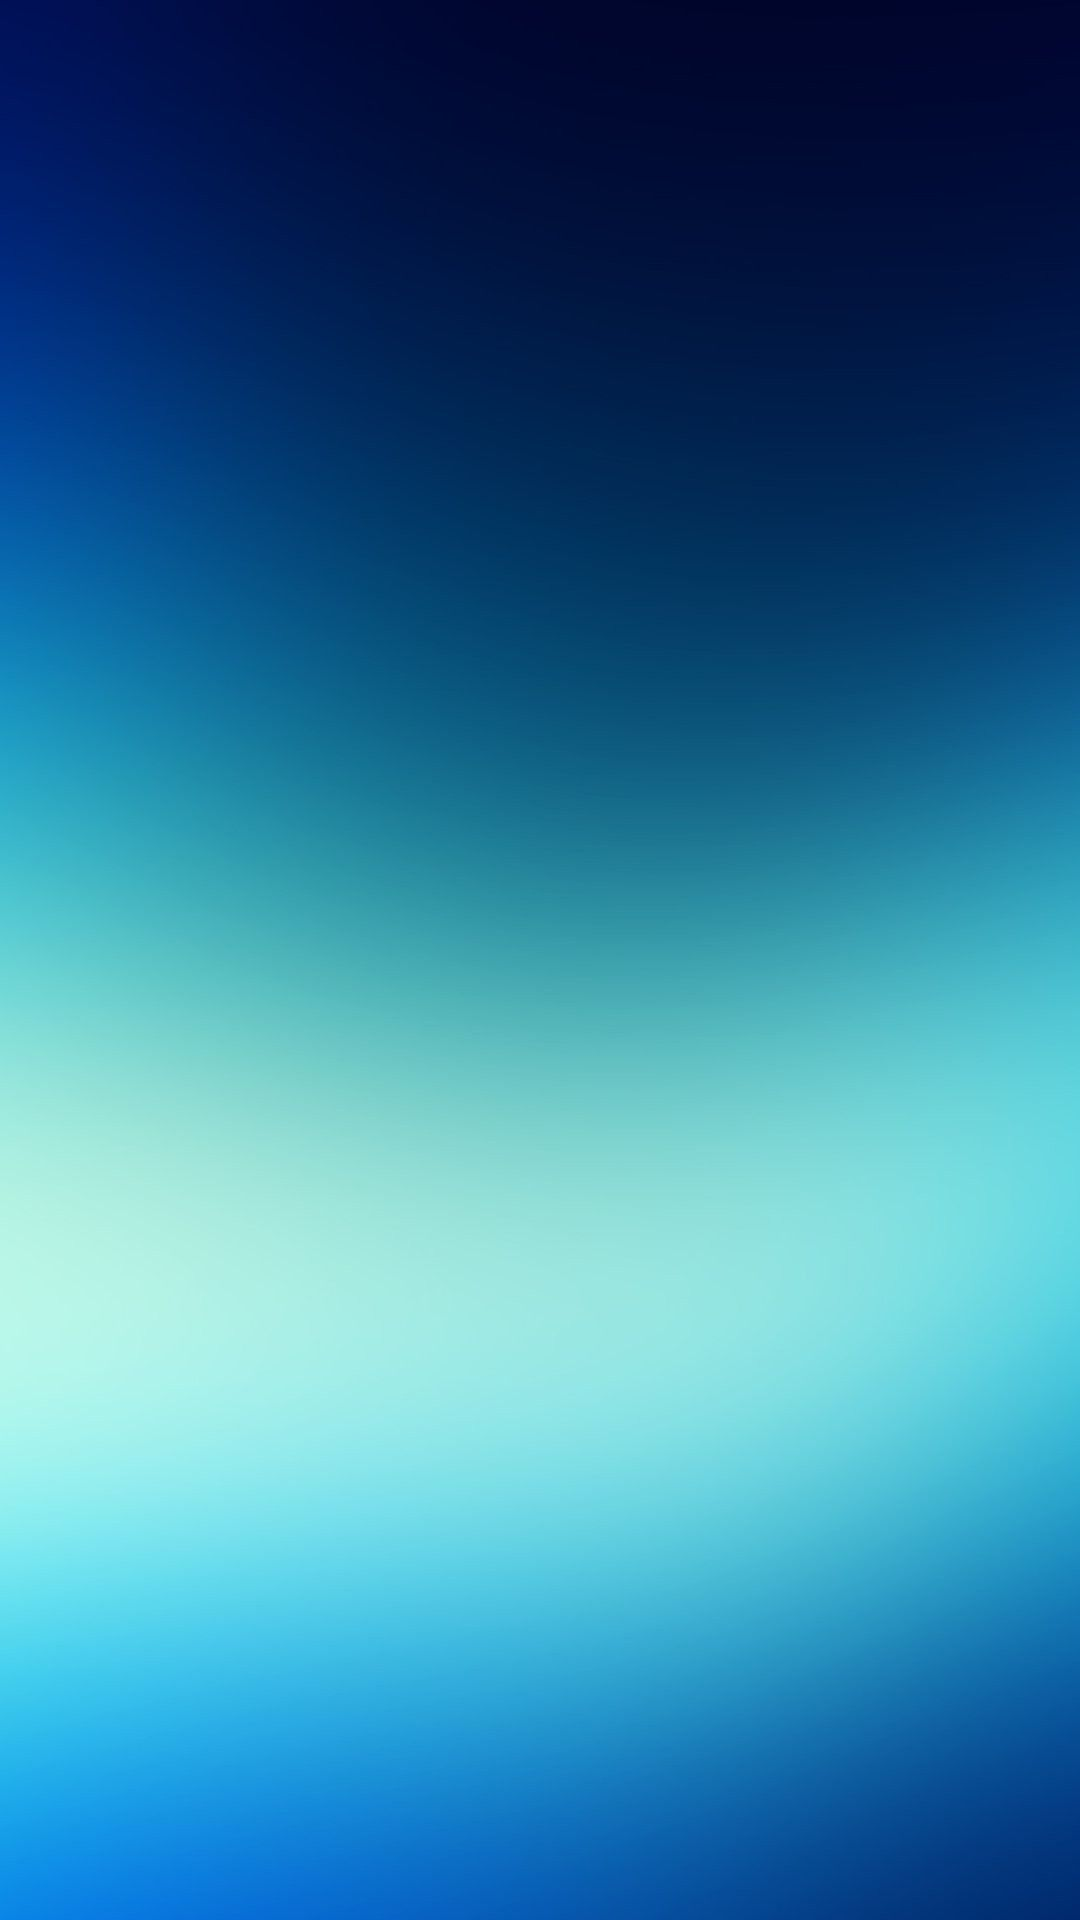 blue iphone wallpaper  Blue Blur iPhone 6 Plus Wallpaper 26343 - Abstract iPhone 6 Plus ...